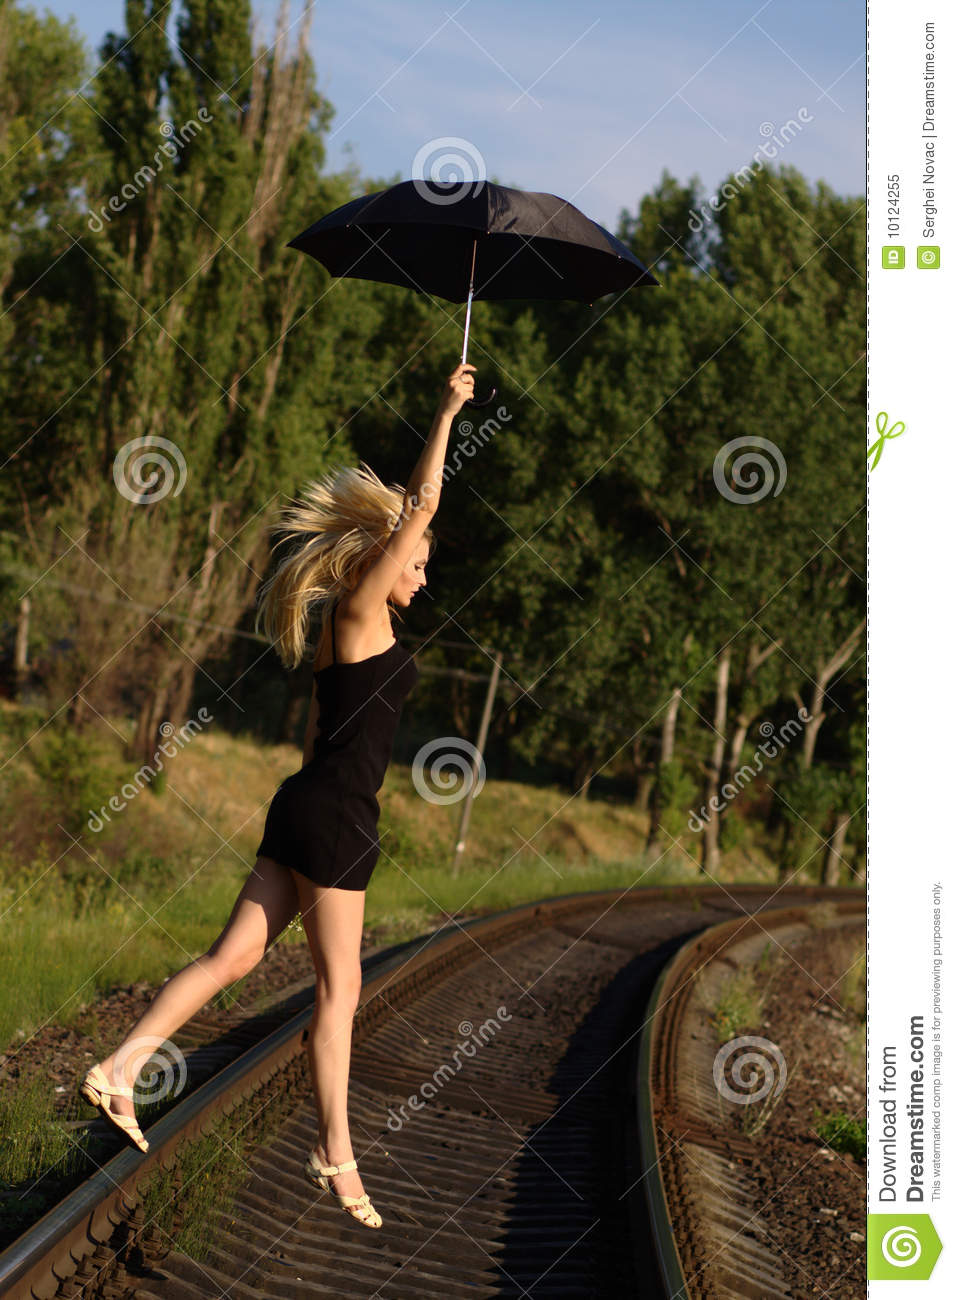 Woman In Black Dress Flying On An Umbrella Stock Image ...